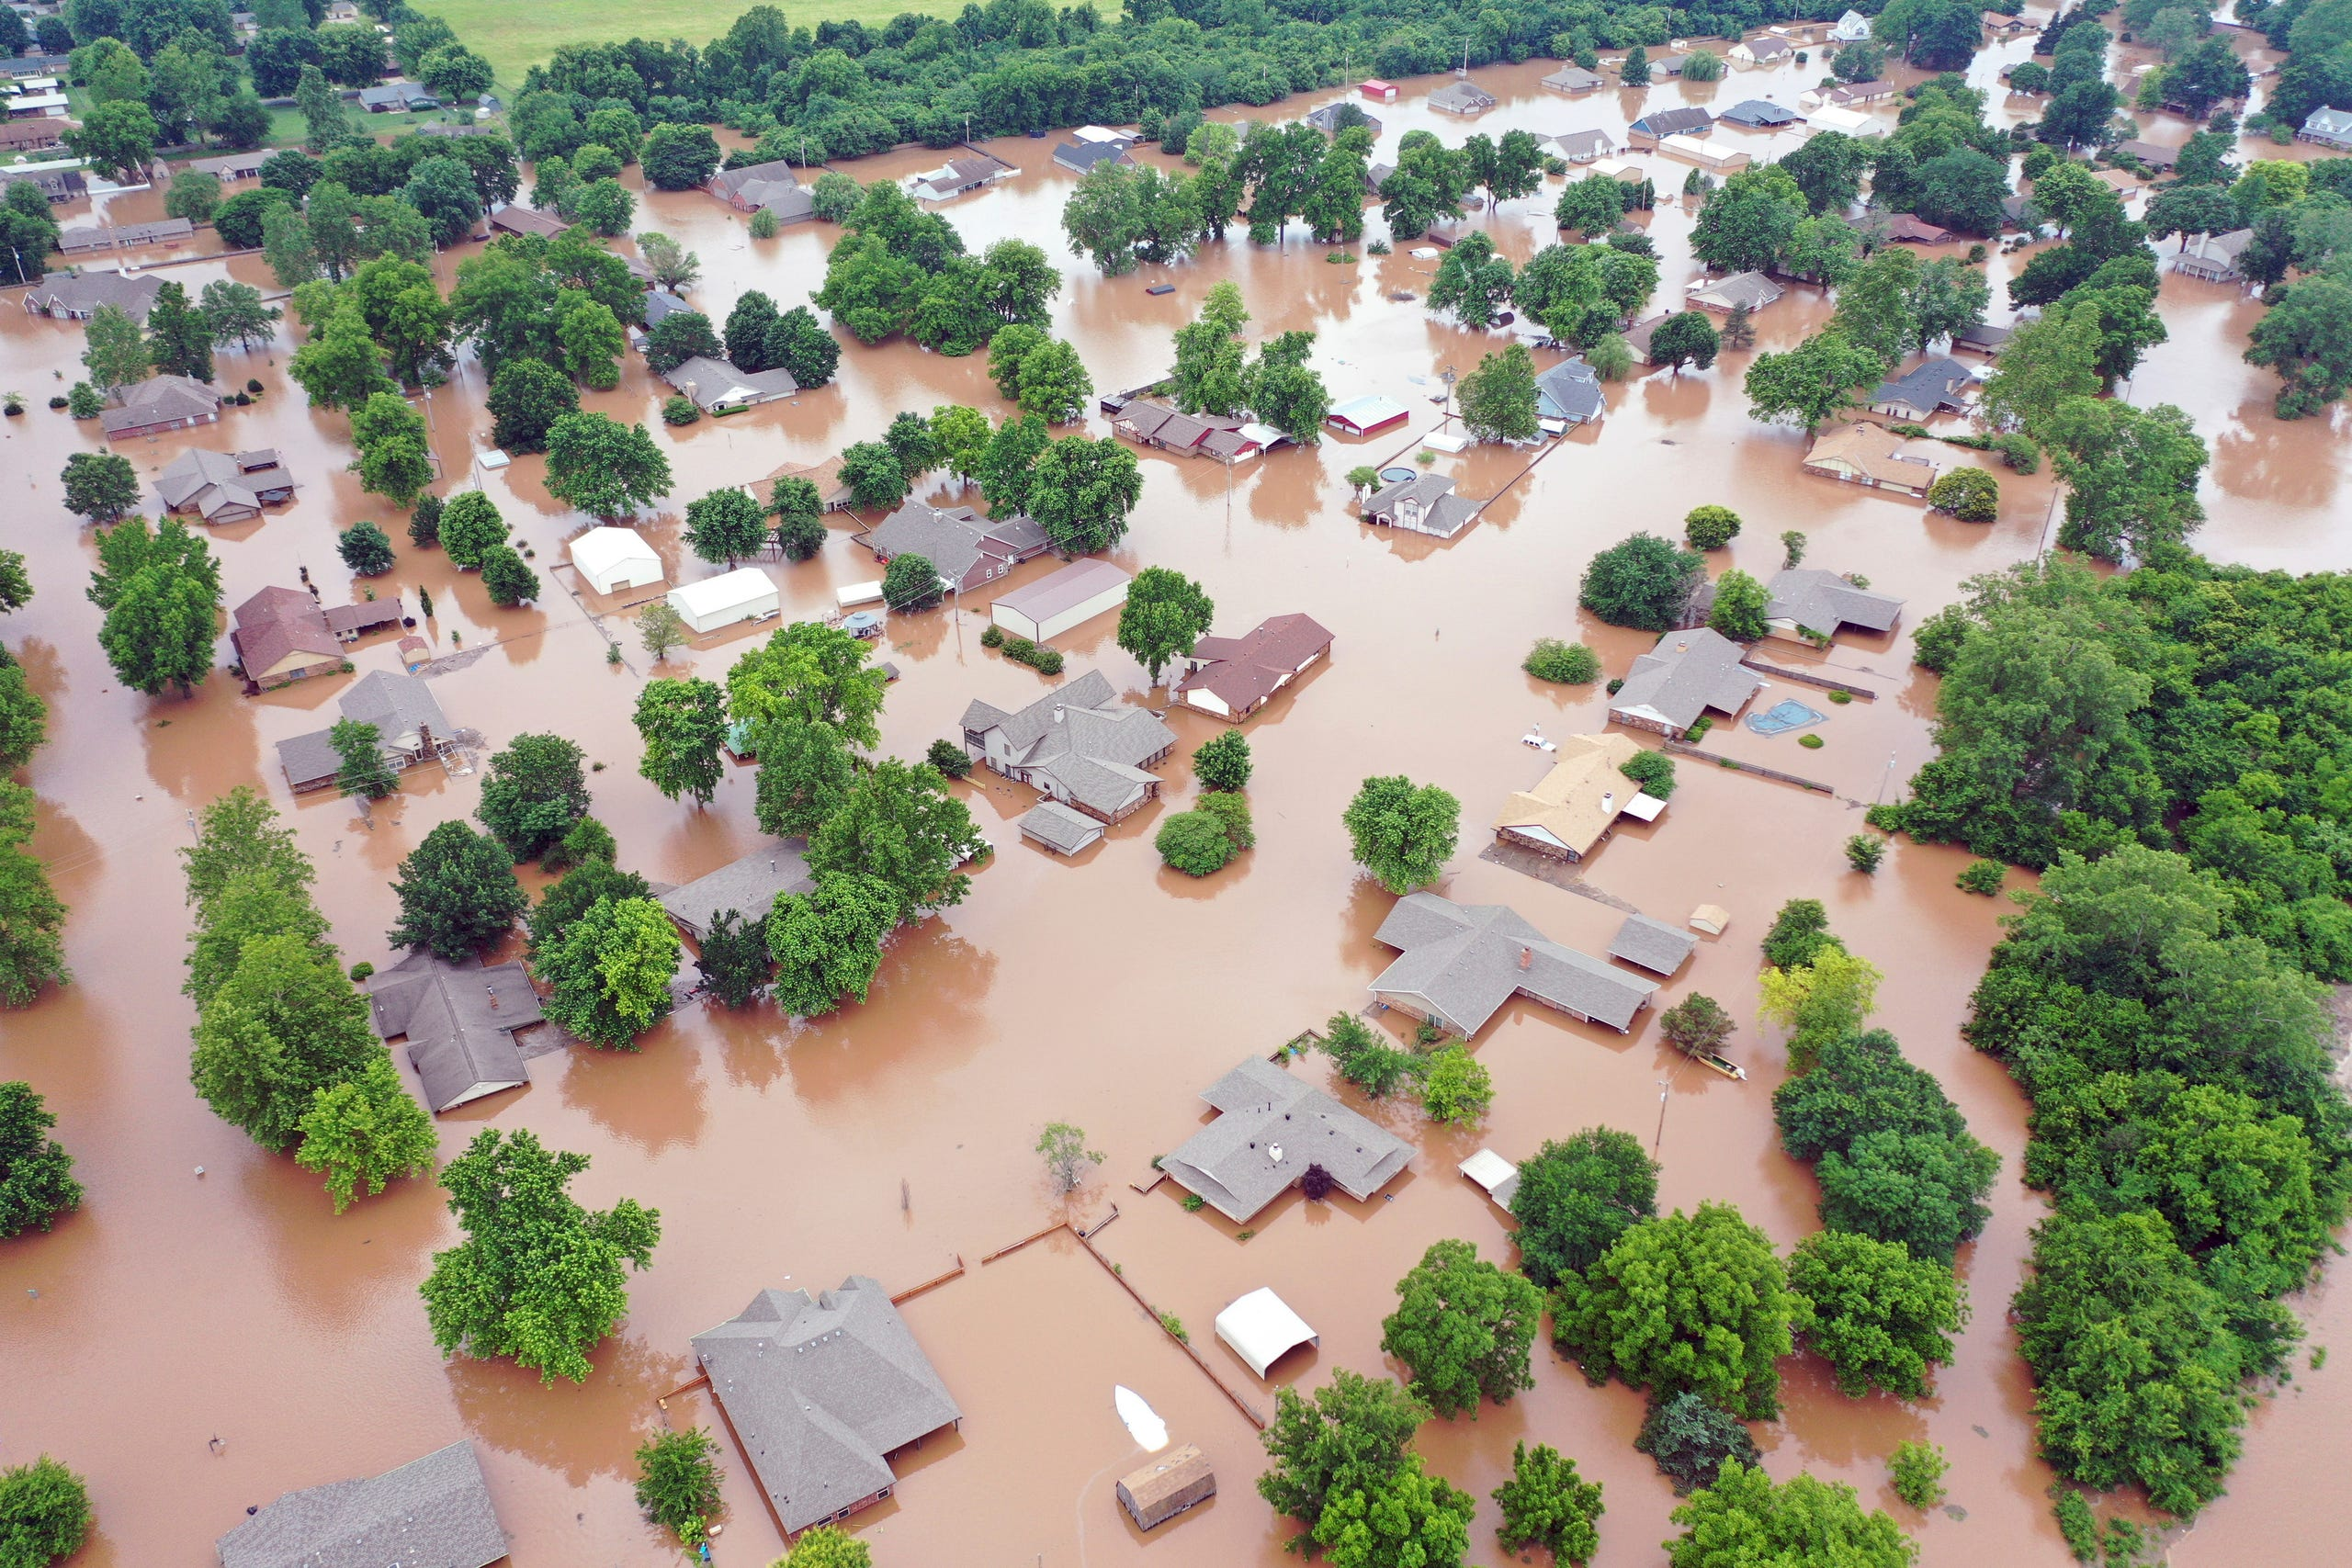 This Tuesday, May 28, 2019, aerial photo shows flooded homes along the Arkansas River in Sand Spring, Okla. Communities that have seen little rain are getting hit by historic flooding along the Arkansas River thanks to downpours upstream that have prompted officials to open dams to protect some cities but inundate others with swells of water.